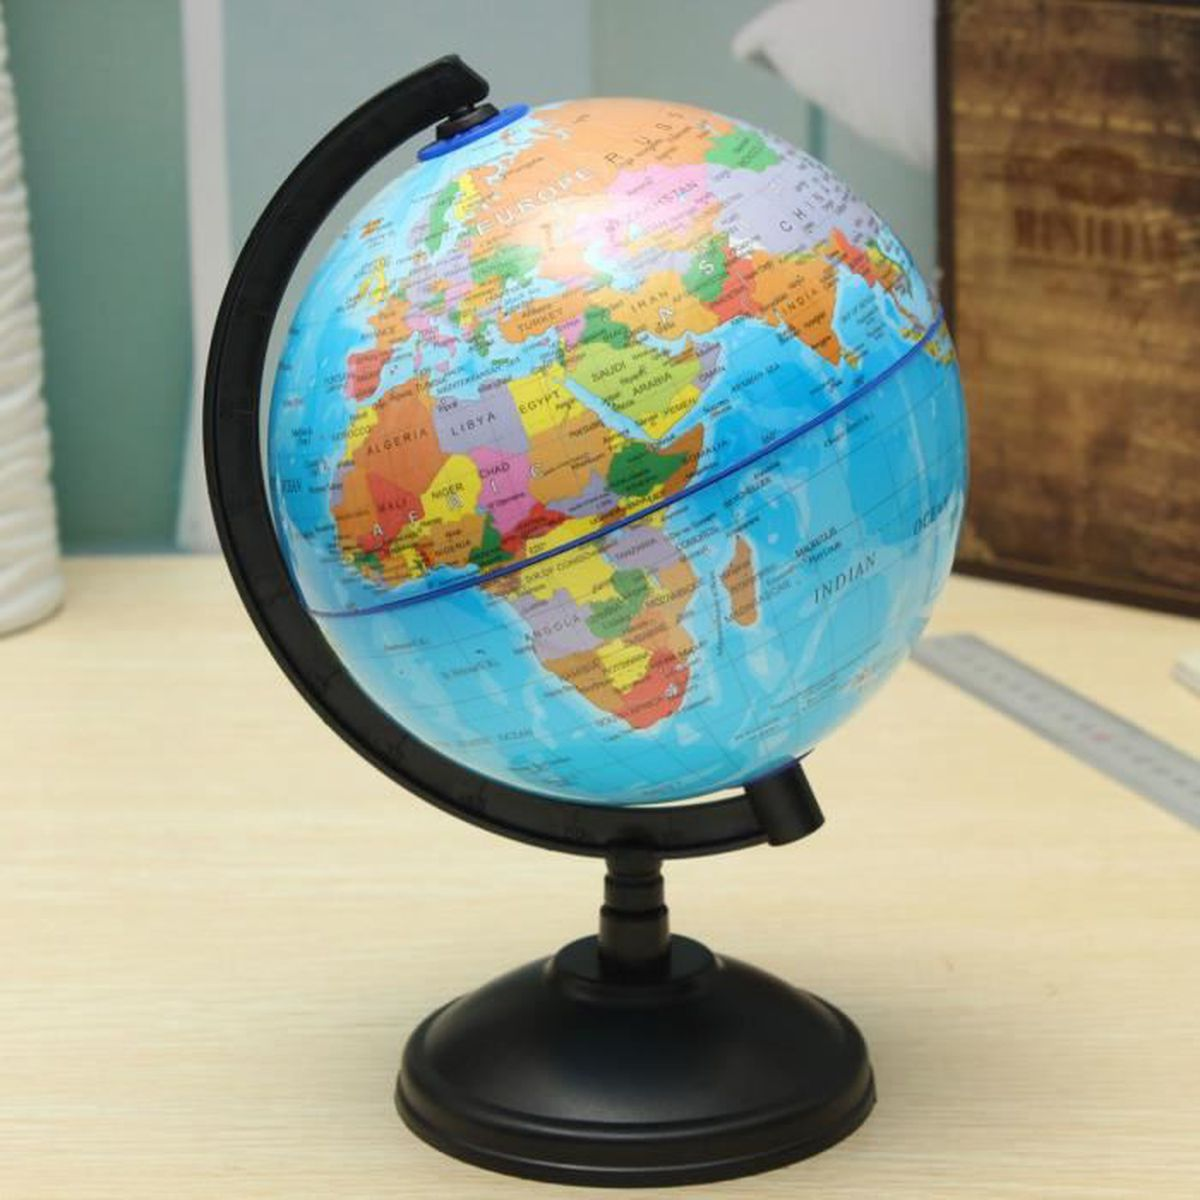 14cm carte du monde globe terrestre base g ographie ducatif enfant jouet cadeau achat vente. Black Bedroom Furniture Sets. Home Design Ideas